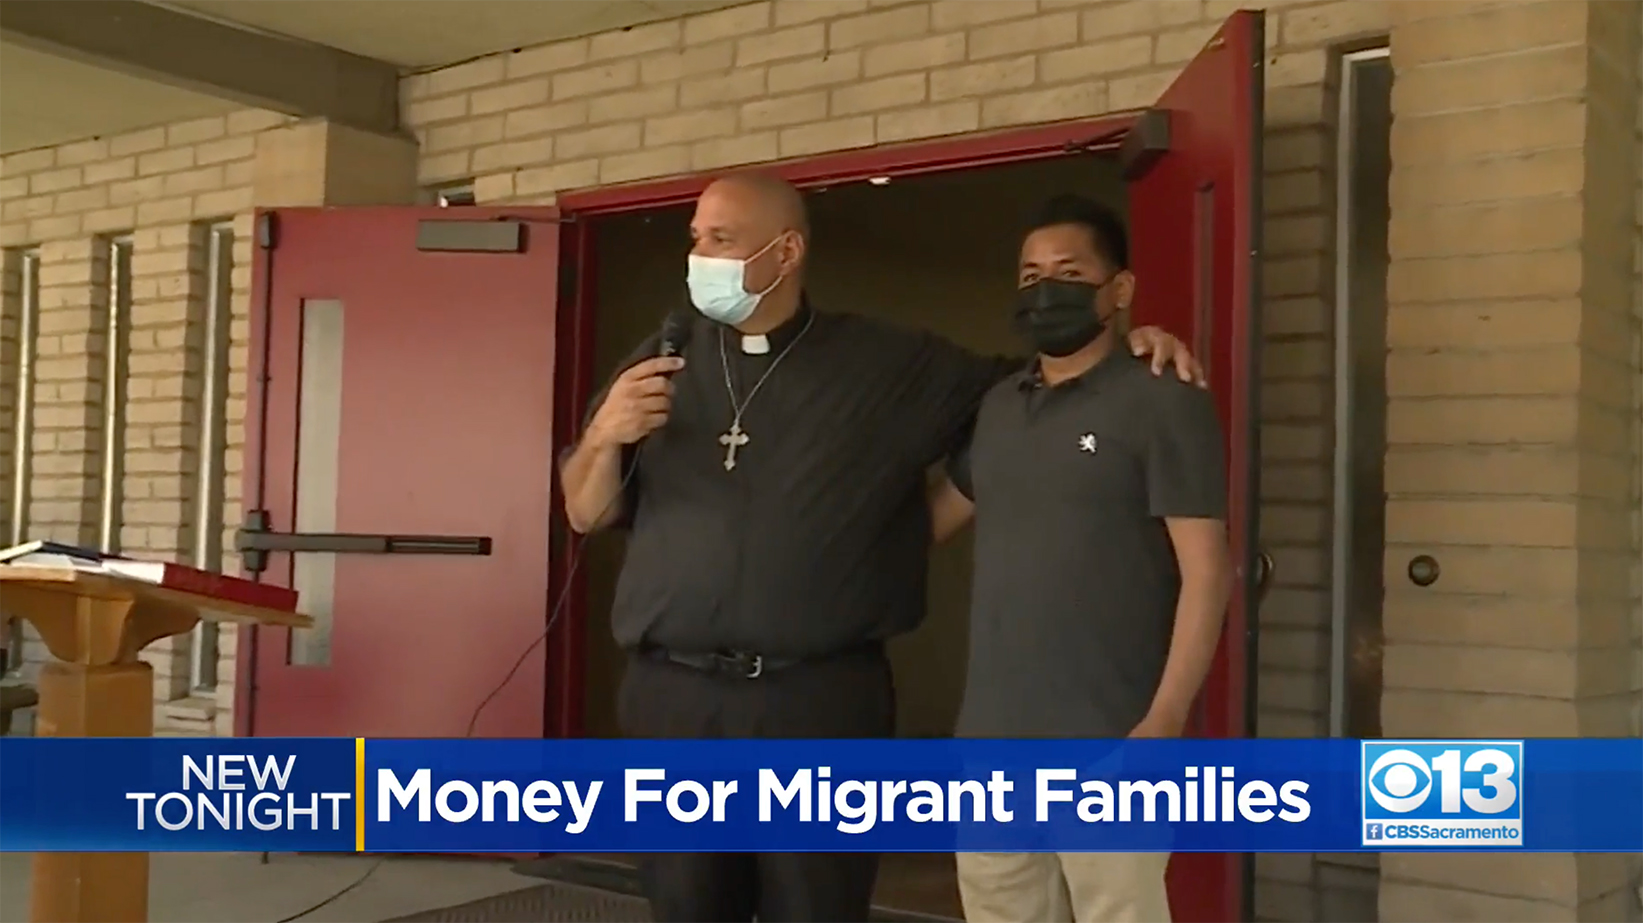 Faith Organizations Hand Out Checks To Help Migrant Families During Pandemic